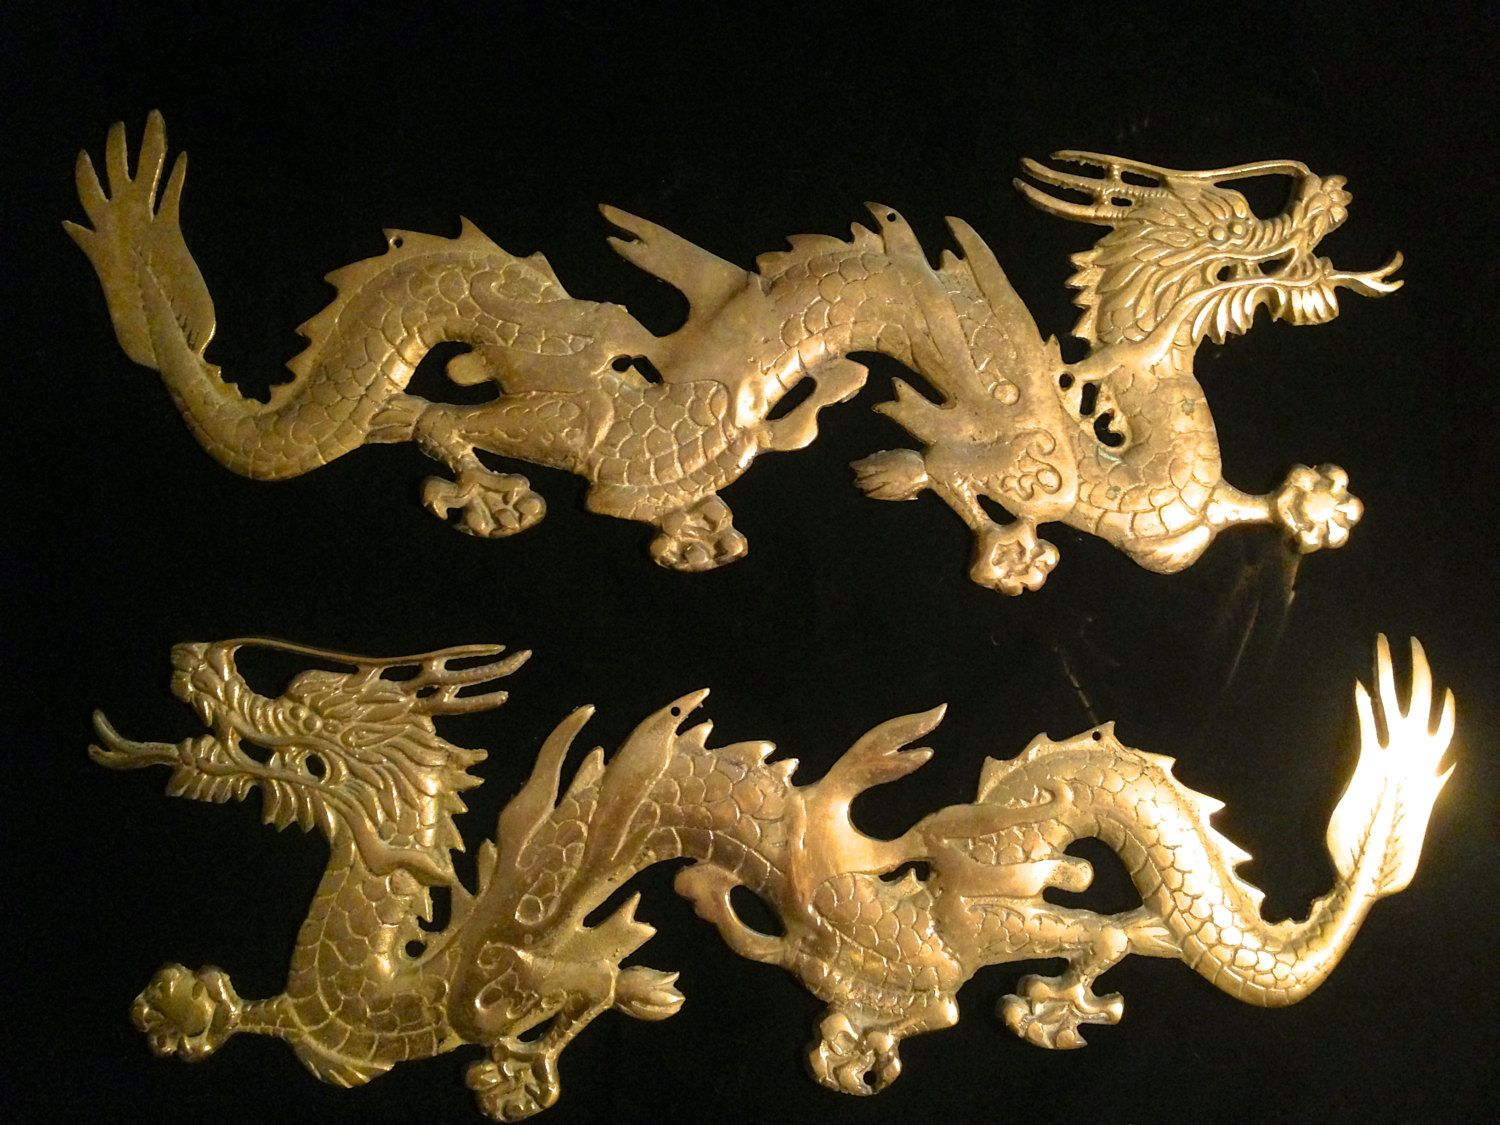 Two Large Vintage Mid Century Modern Br Dragons Asian Decor Wall Hanging Sculptures By Offcenterdesign7 On Etsy